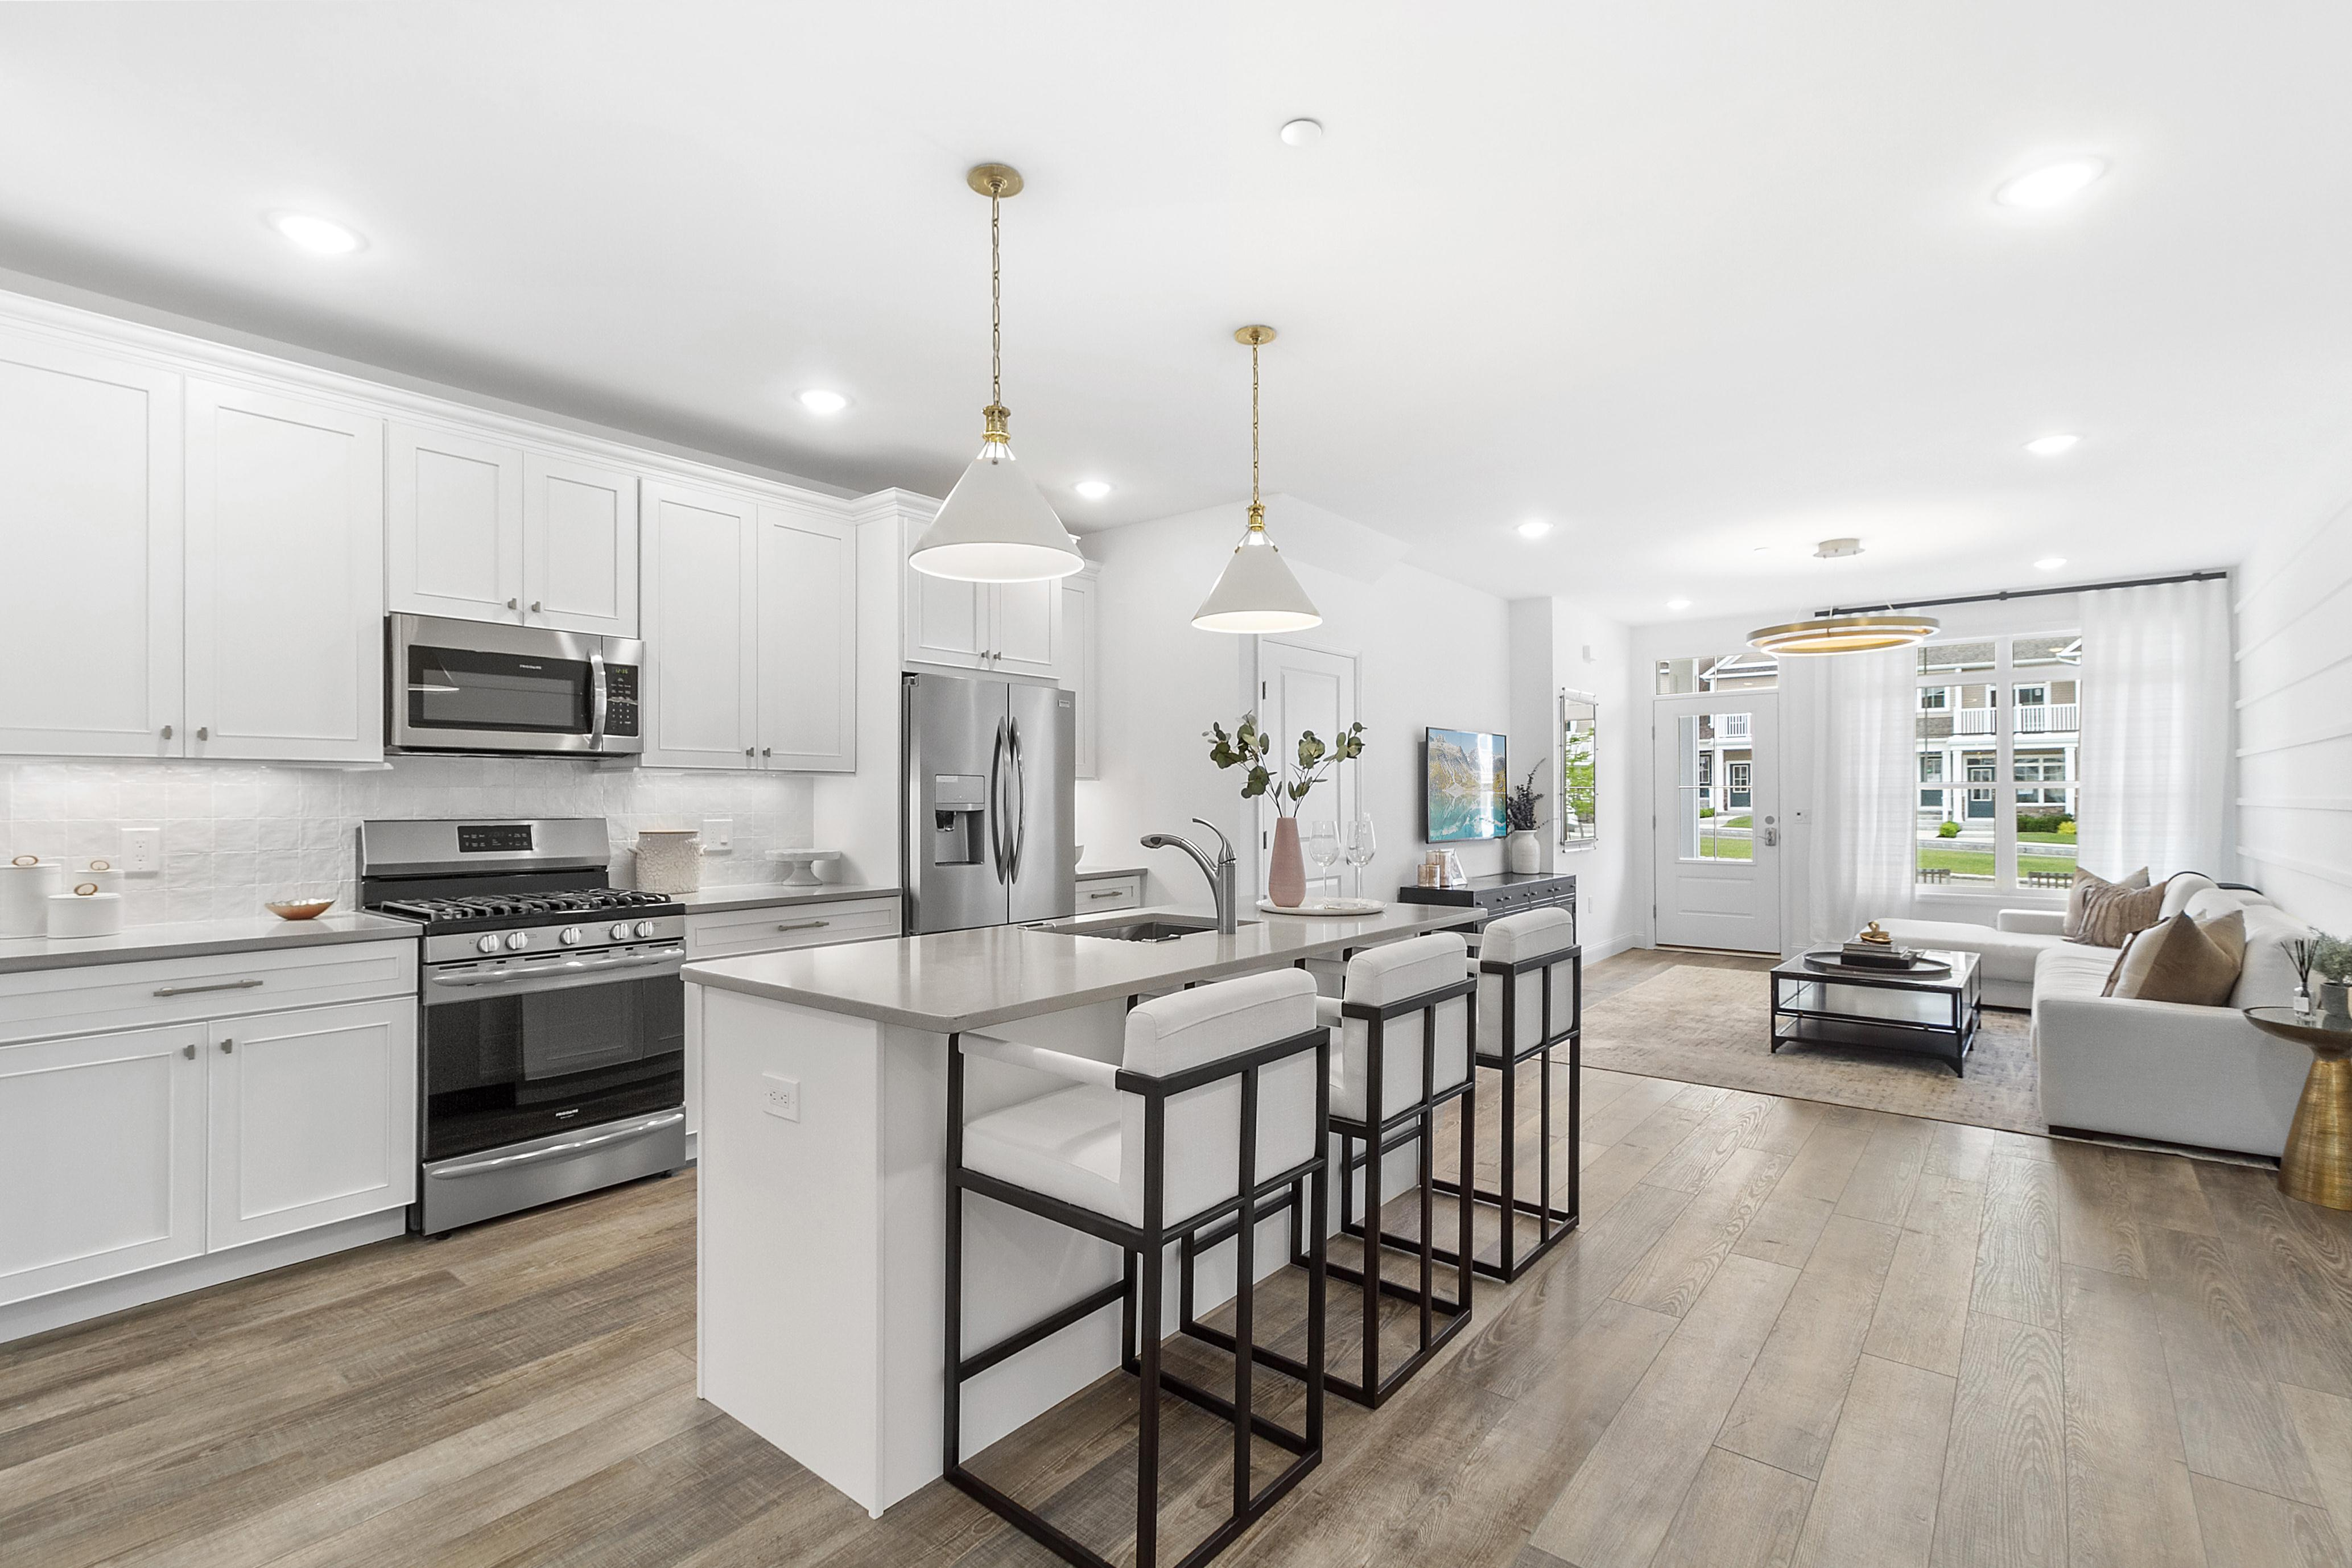 Kitchen featured in The Ashford By Beechwood Homes in Nassau-Suffolk, NY